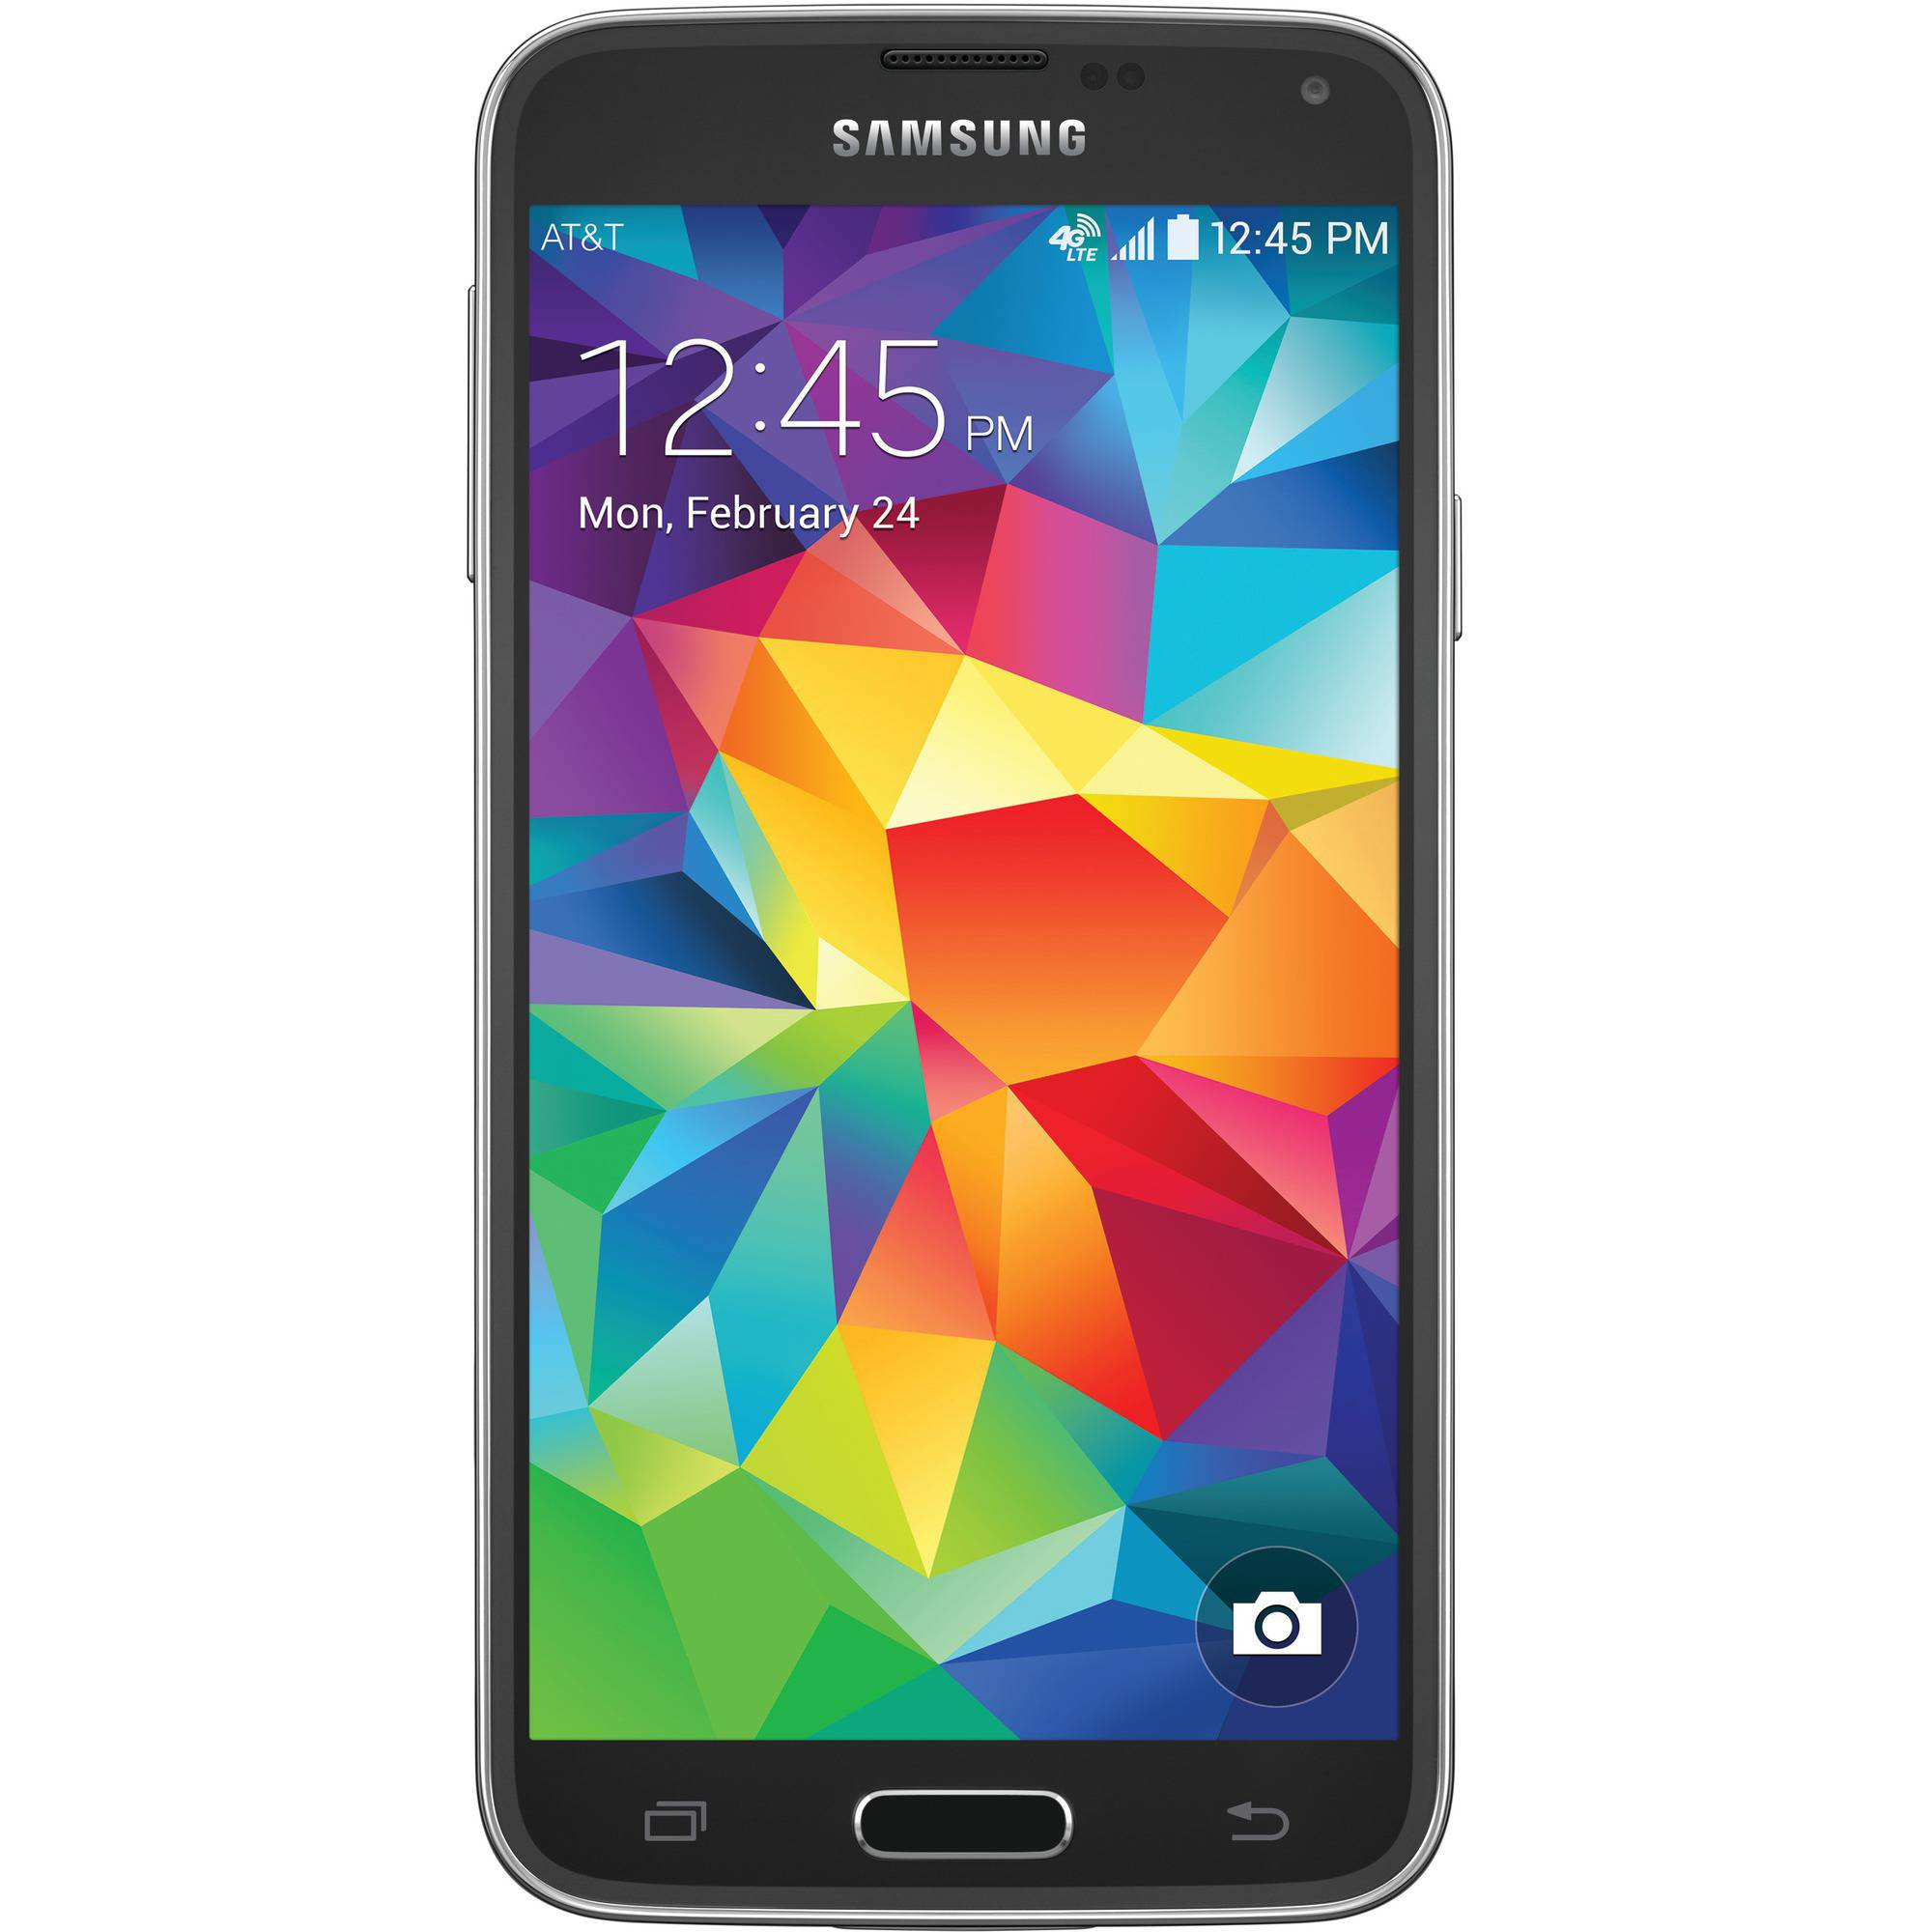 Samsung Galaxy S5 Certified Pre-Owned Smartphone, (AT&T)